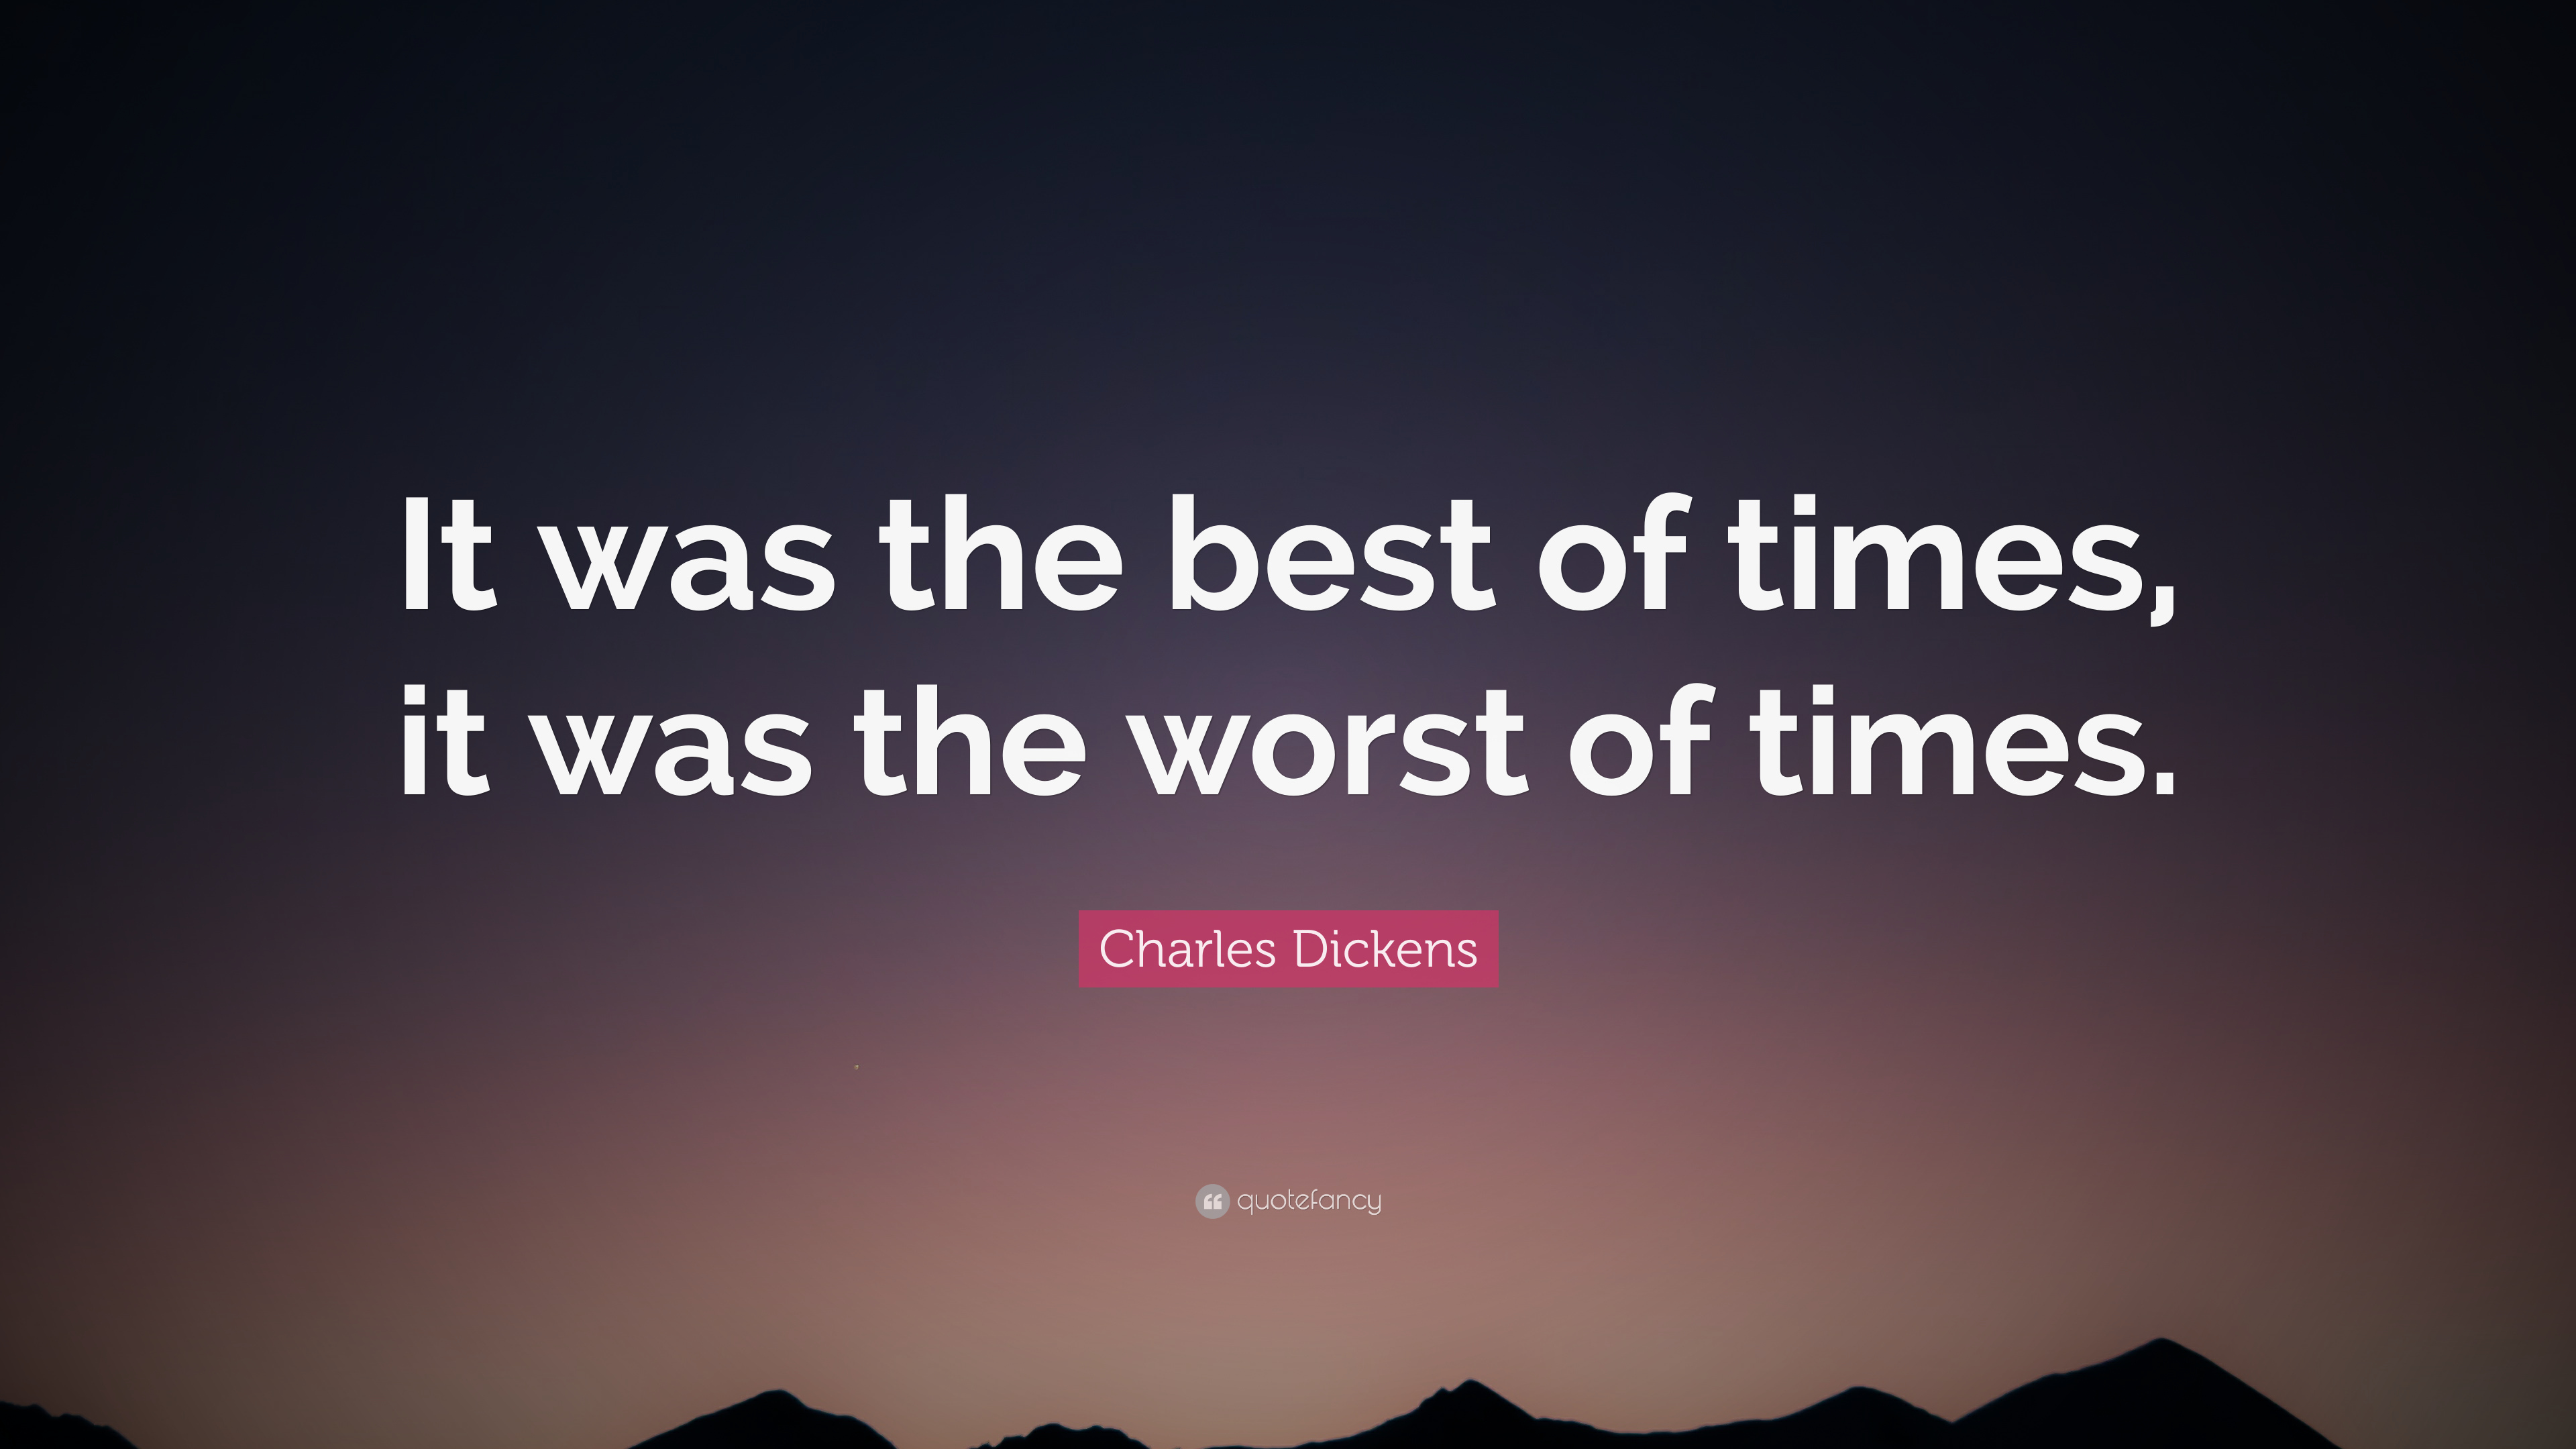 best times, worst times essay Quotation #29595 from classic quotes: it was the best of times, it was the worst of times, it was the age of wisdom, it was the age of foolishness, it was the epoch of belief, it was the epoch of incredulity, it was the season of light, it was the season of darkness, it was the spring of hope, it.